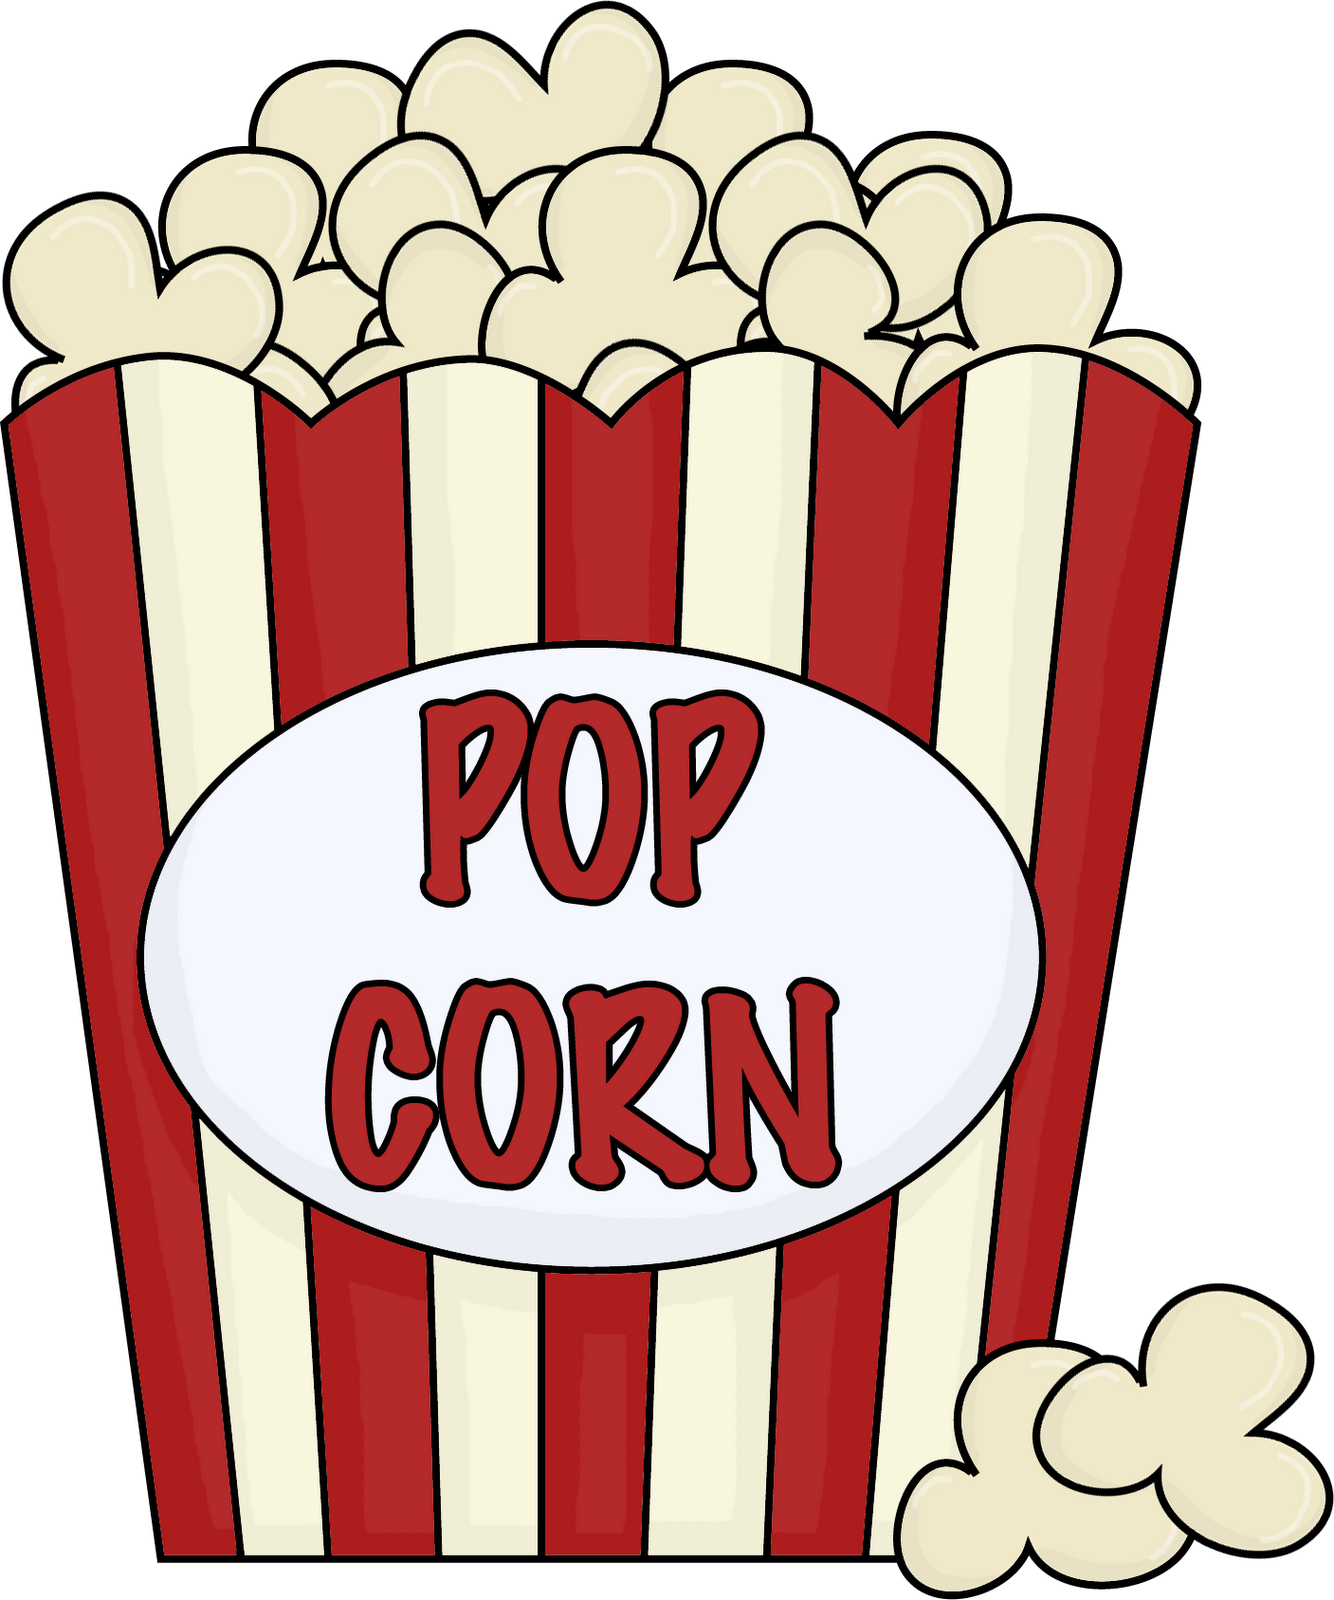 Popcorn  black and white popcorn bucket clipart 2